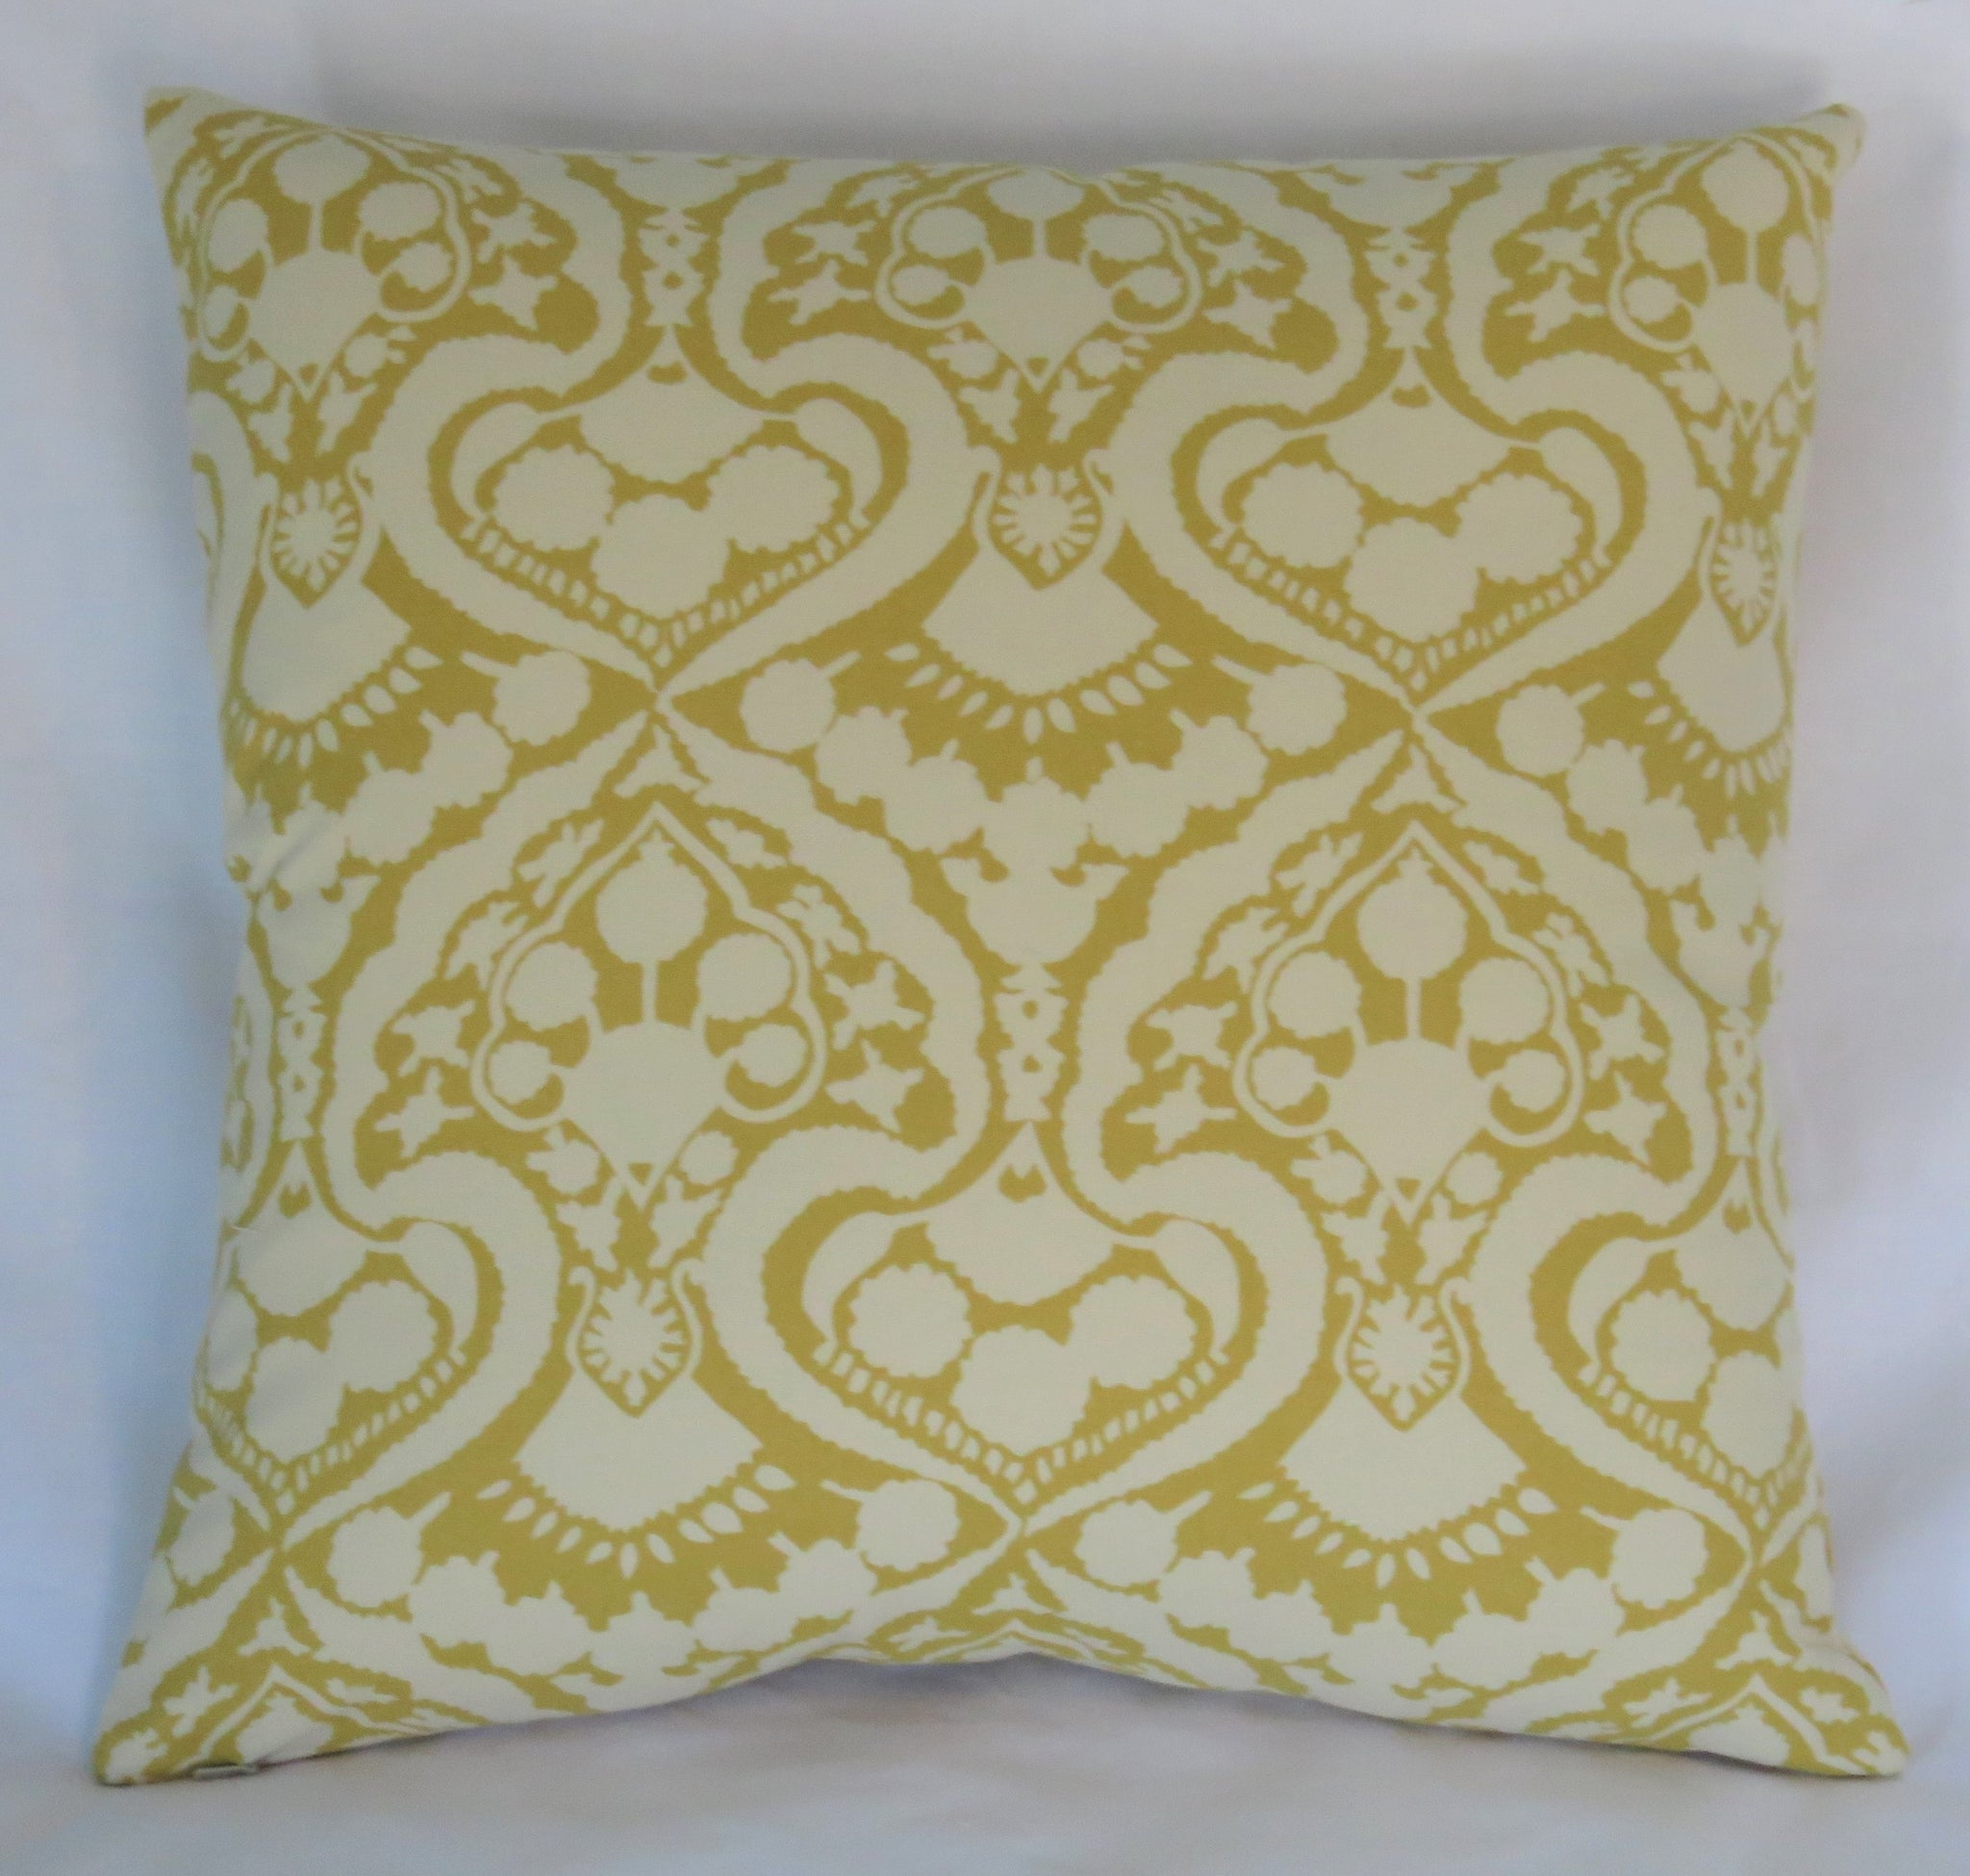 Gold and Ivory damask print pillow cover